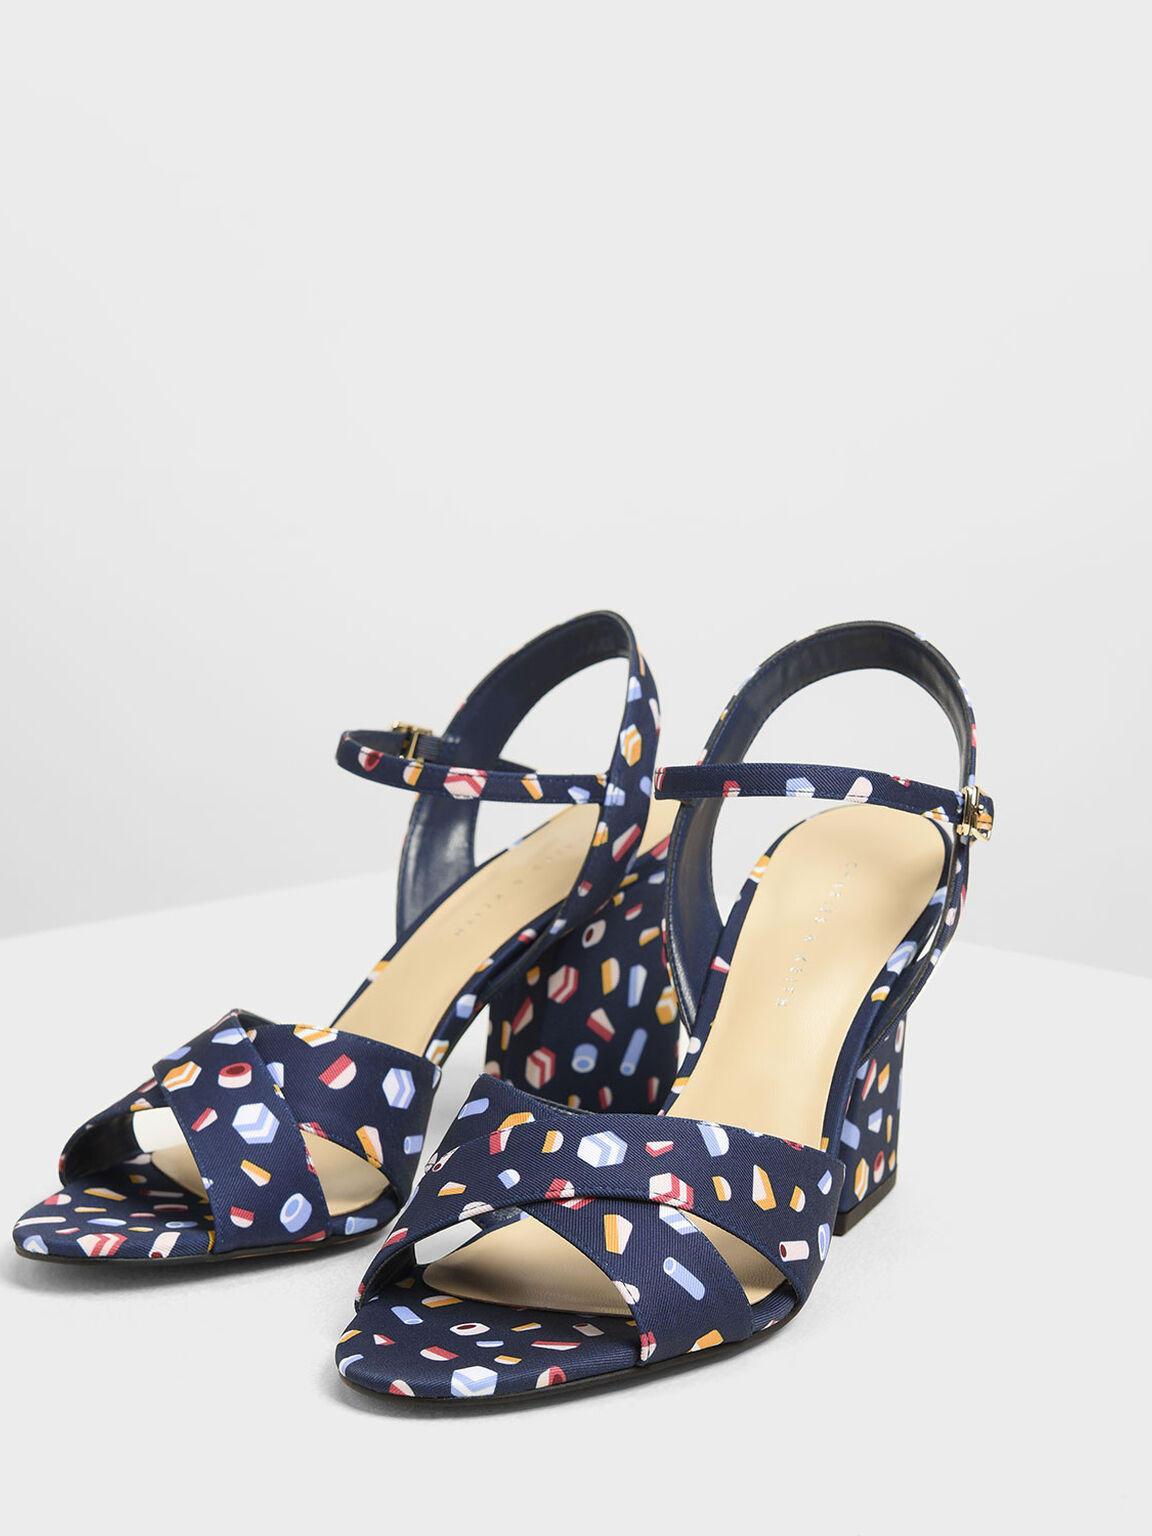 Criss Cross Printed Block Heel Sandals, Dark Blue, hi-res